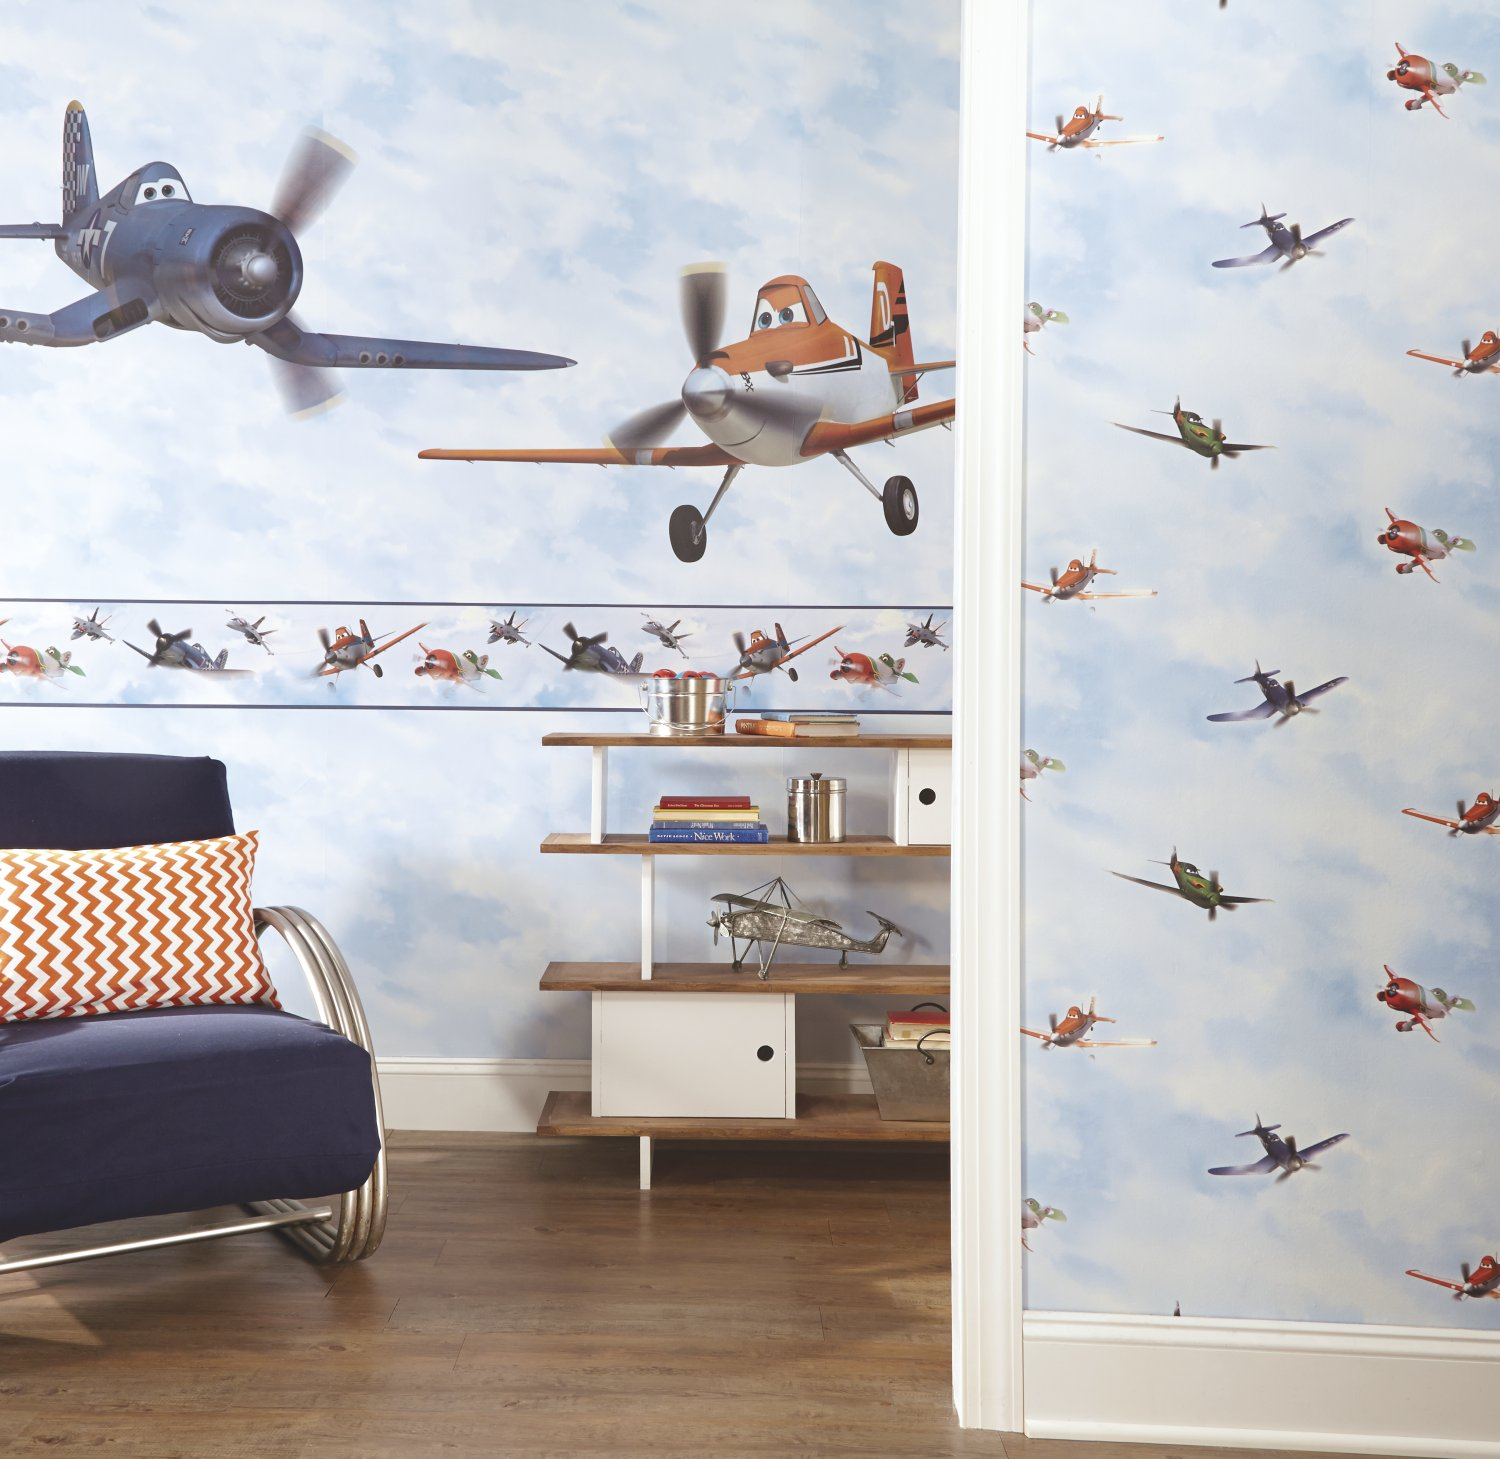 York wallcoverings walt disney kids ii cloud wallpaper memo sample york wallcoverings walt disney kids ii cloud wallpaper memo sample 8 inch x 10 inch light and medium bluewhite amazon amipublicfo Image collections